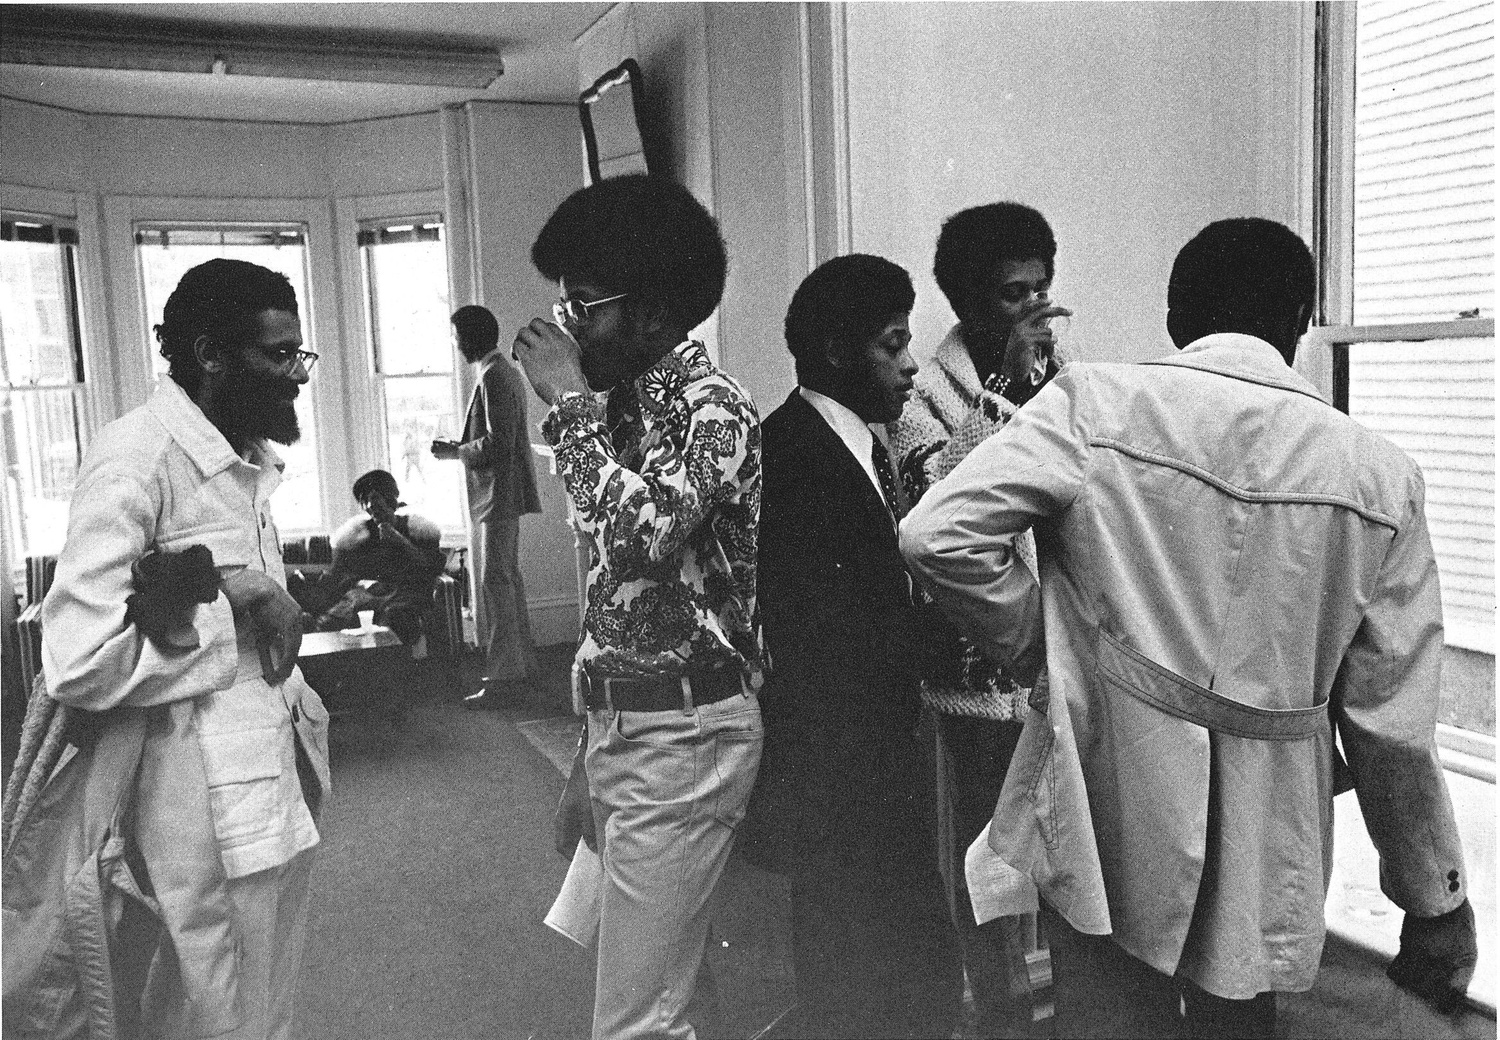 A photo from a 1975 yearbook compilation on black community life.